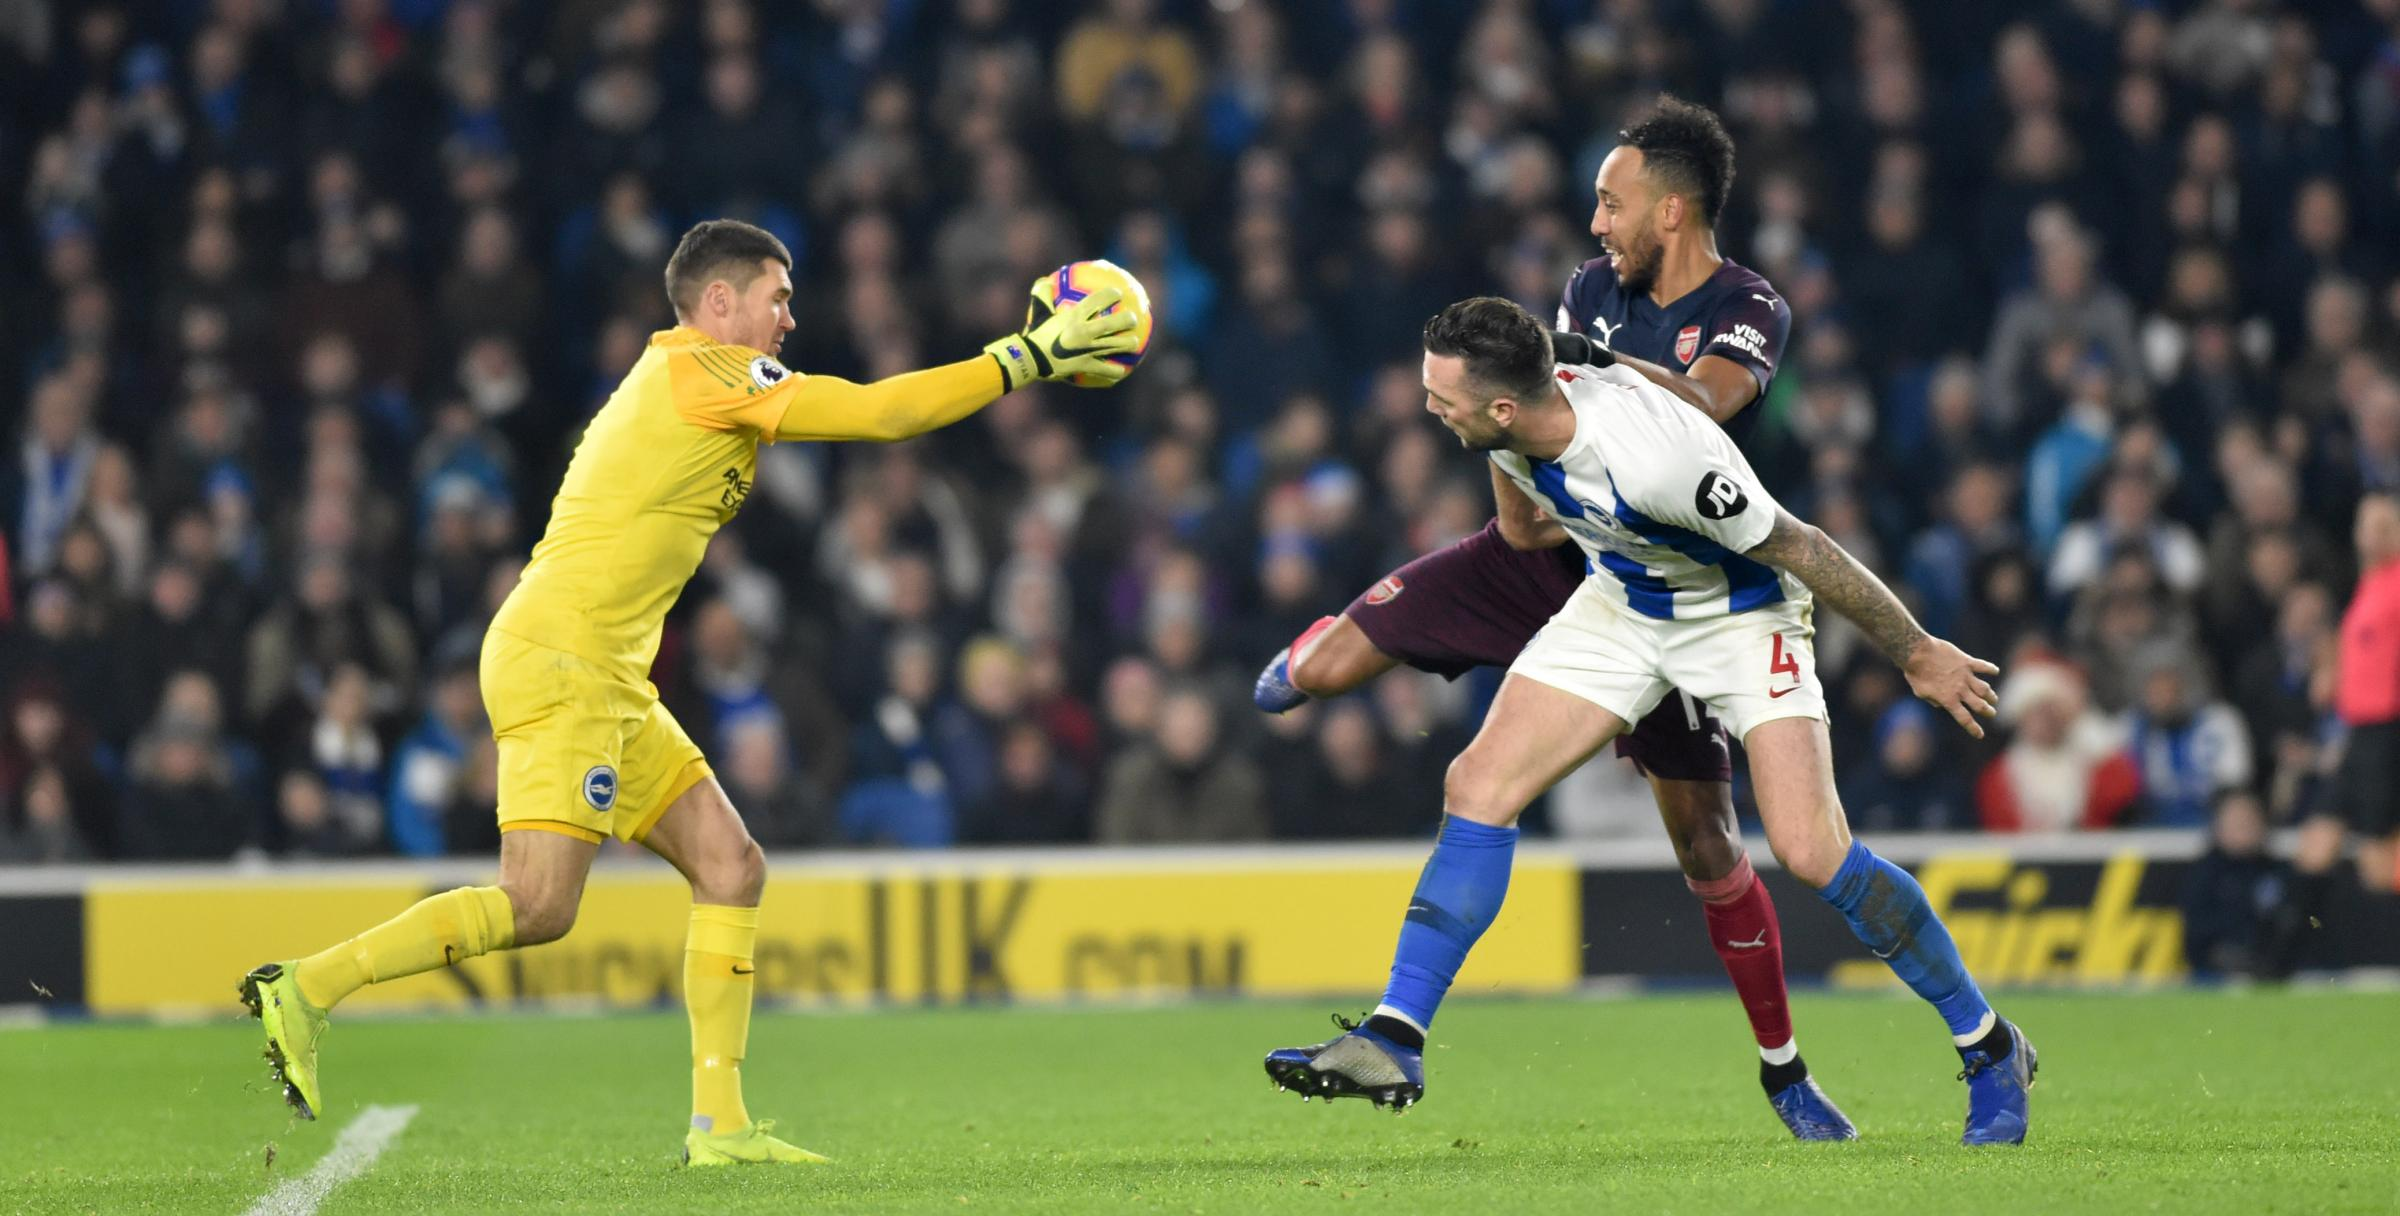 Mathew Ryan made two crucial saves from Pierre-Emerick Aubameyang